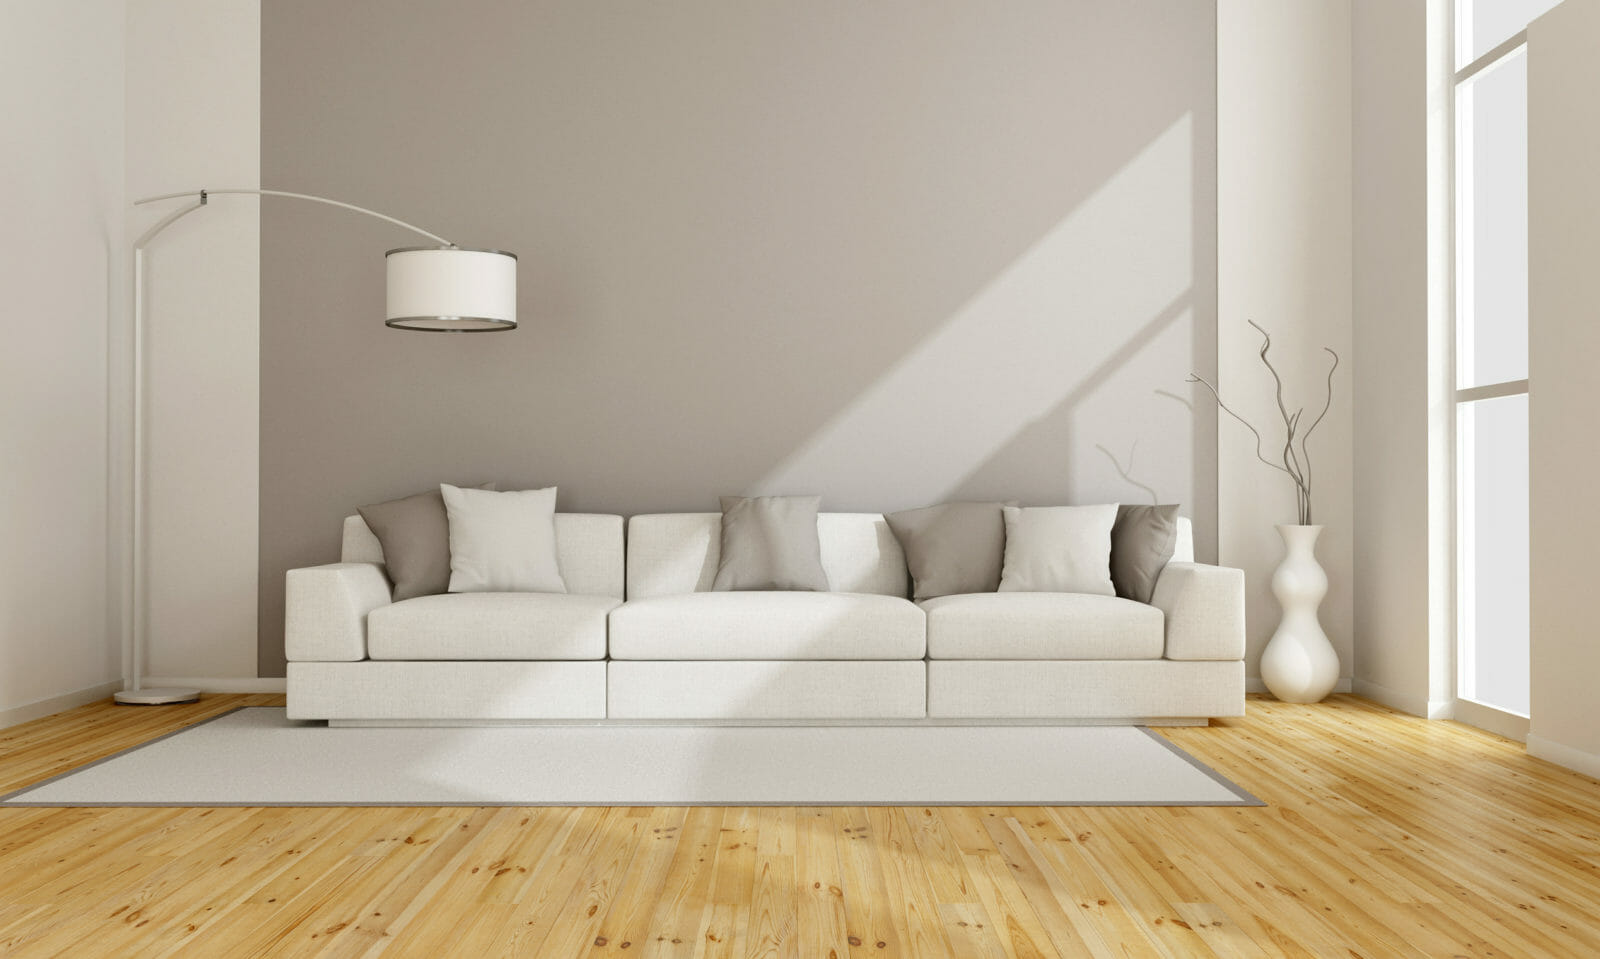 example of minimalist interior design in living room